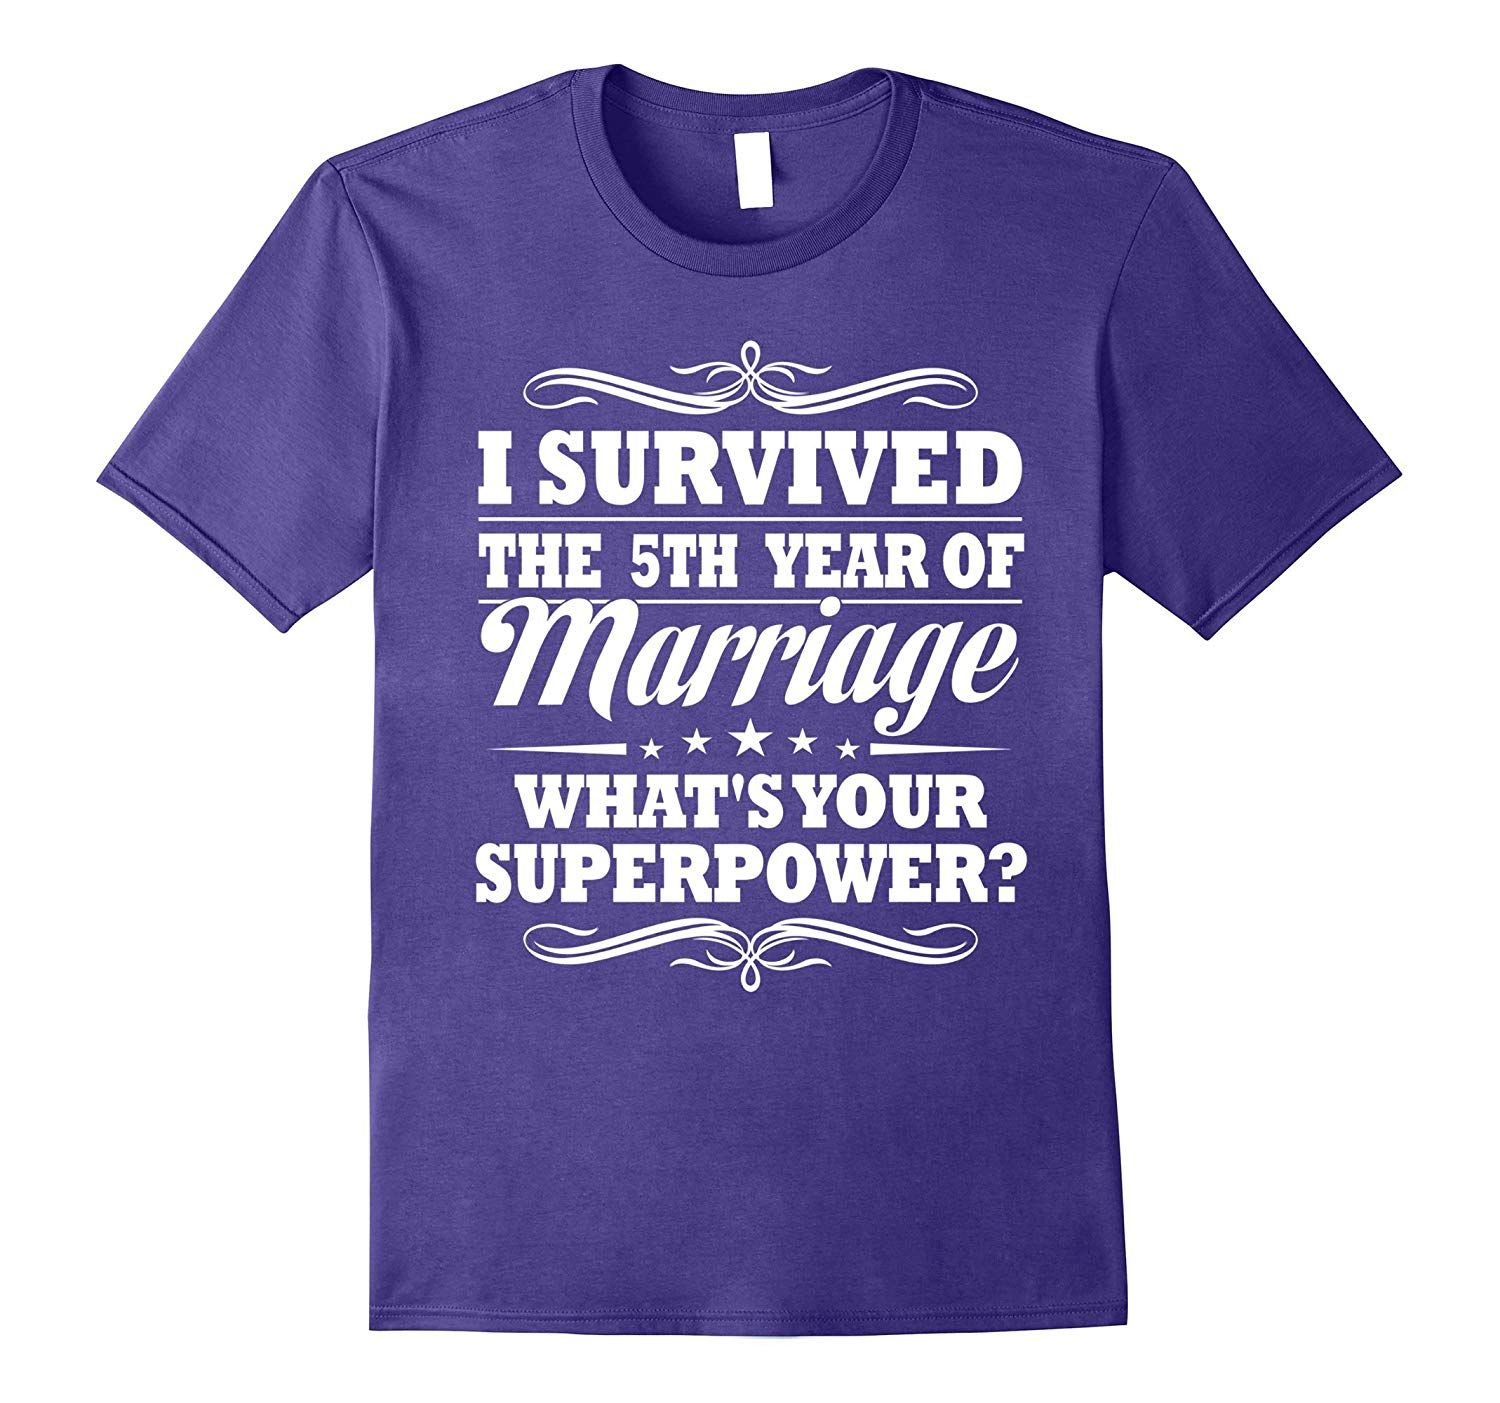 5th Wedding Anniversary Gift Ideas For Husband: 5th Wedding Anniversary Gift Ideas For Her Him- I Survived